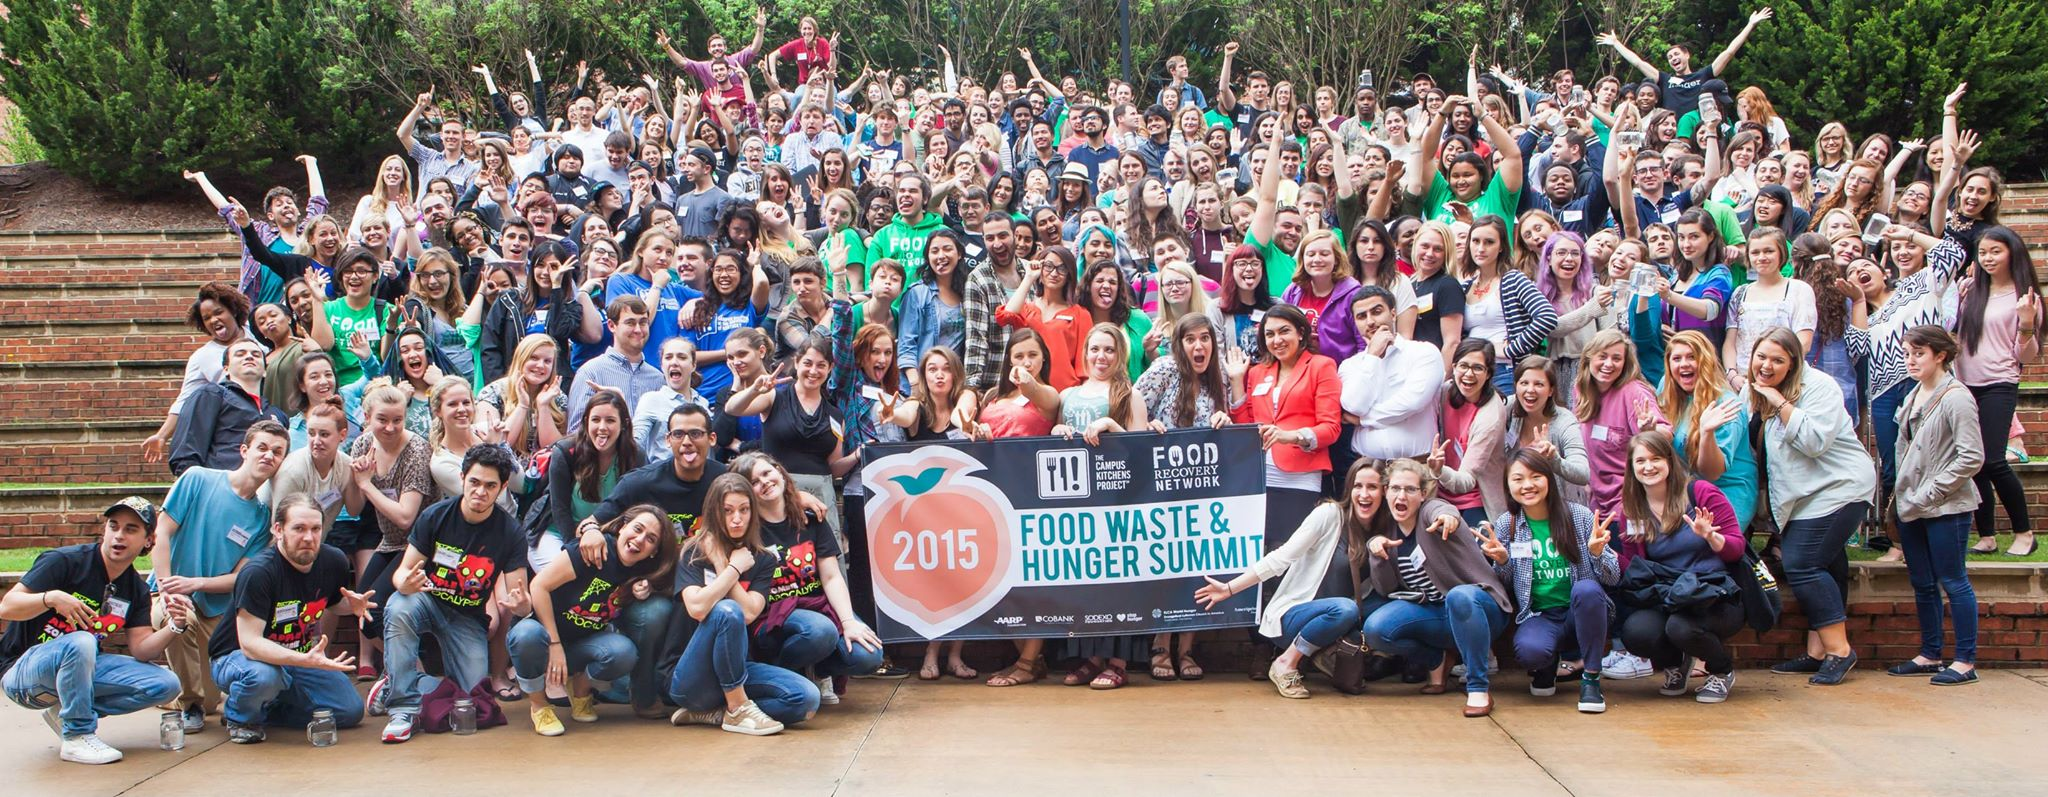 Our FRNds at last year's Food Waste & Hunger Summit in Athens, Georgia.